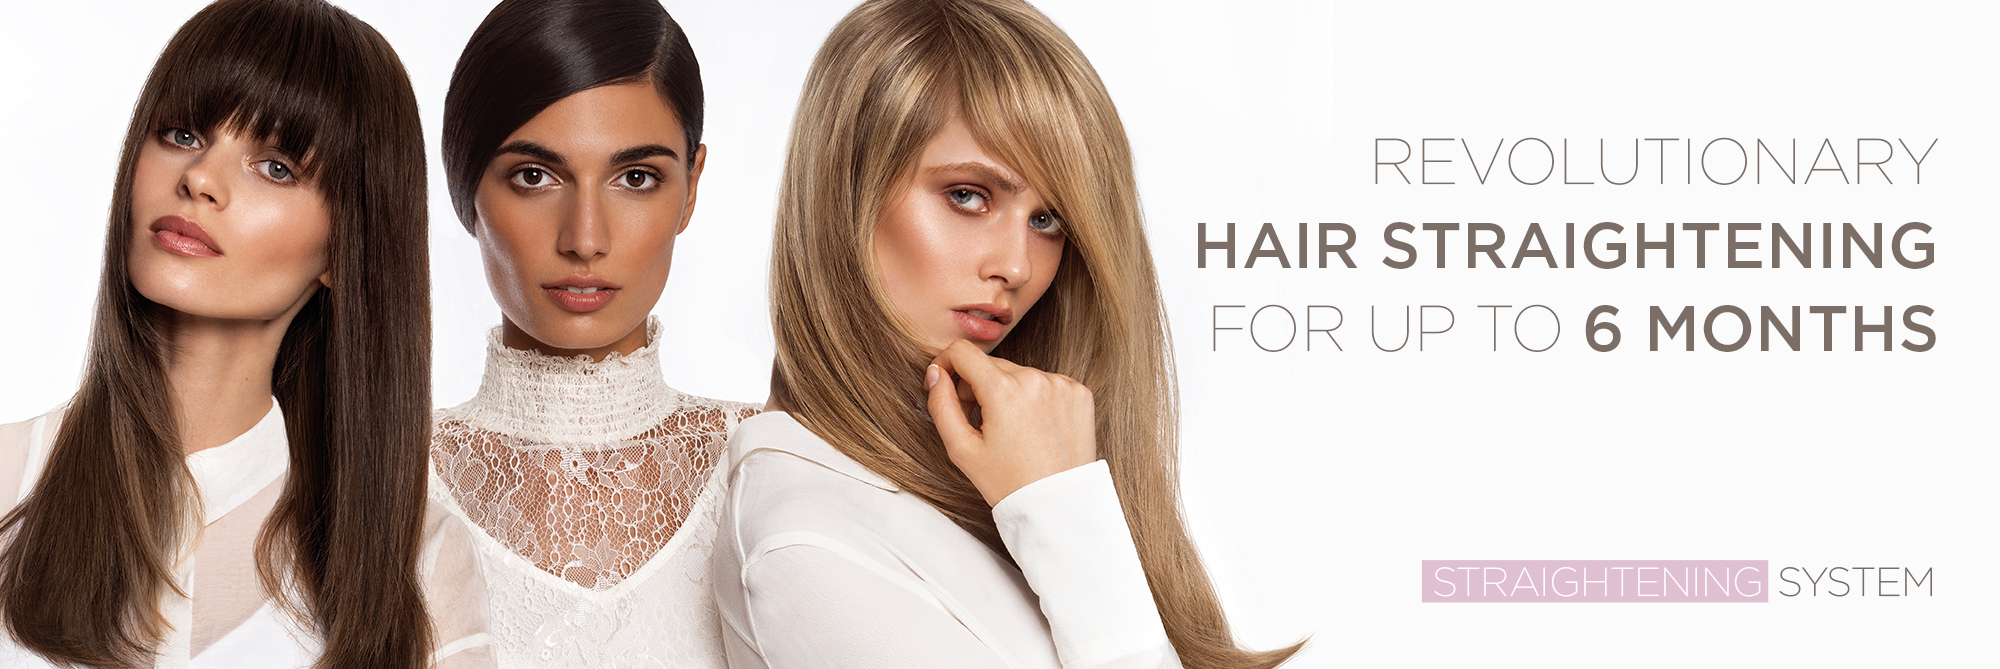 salon systems, straightening system, treatment, smooth, glossy